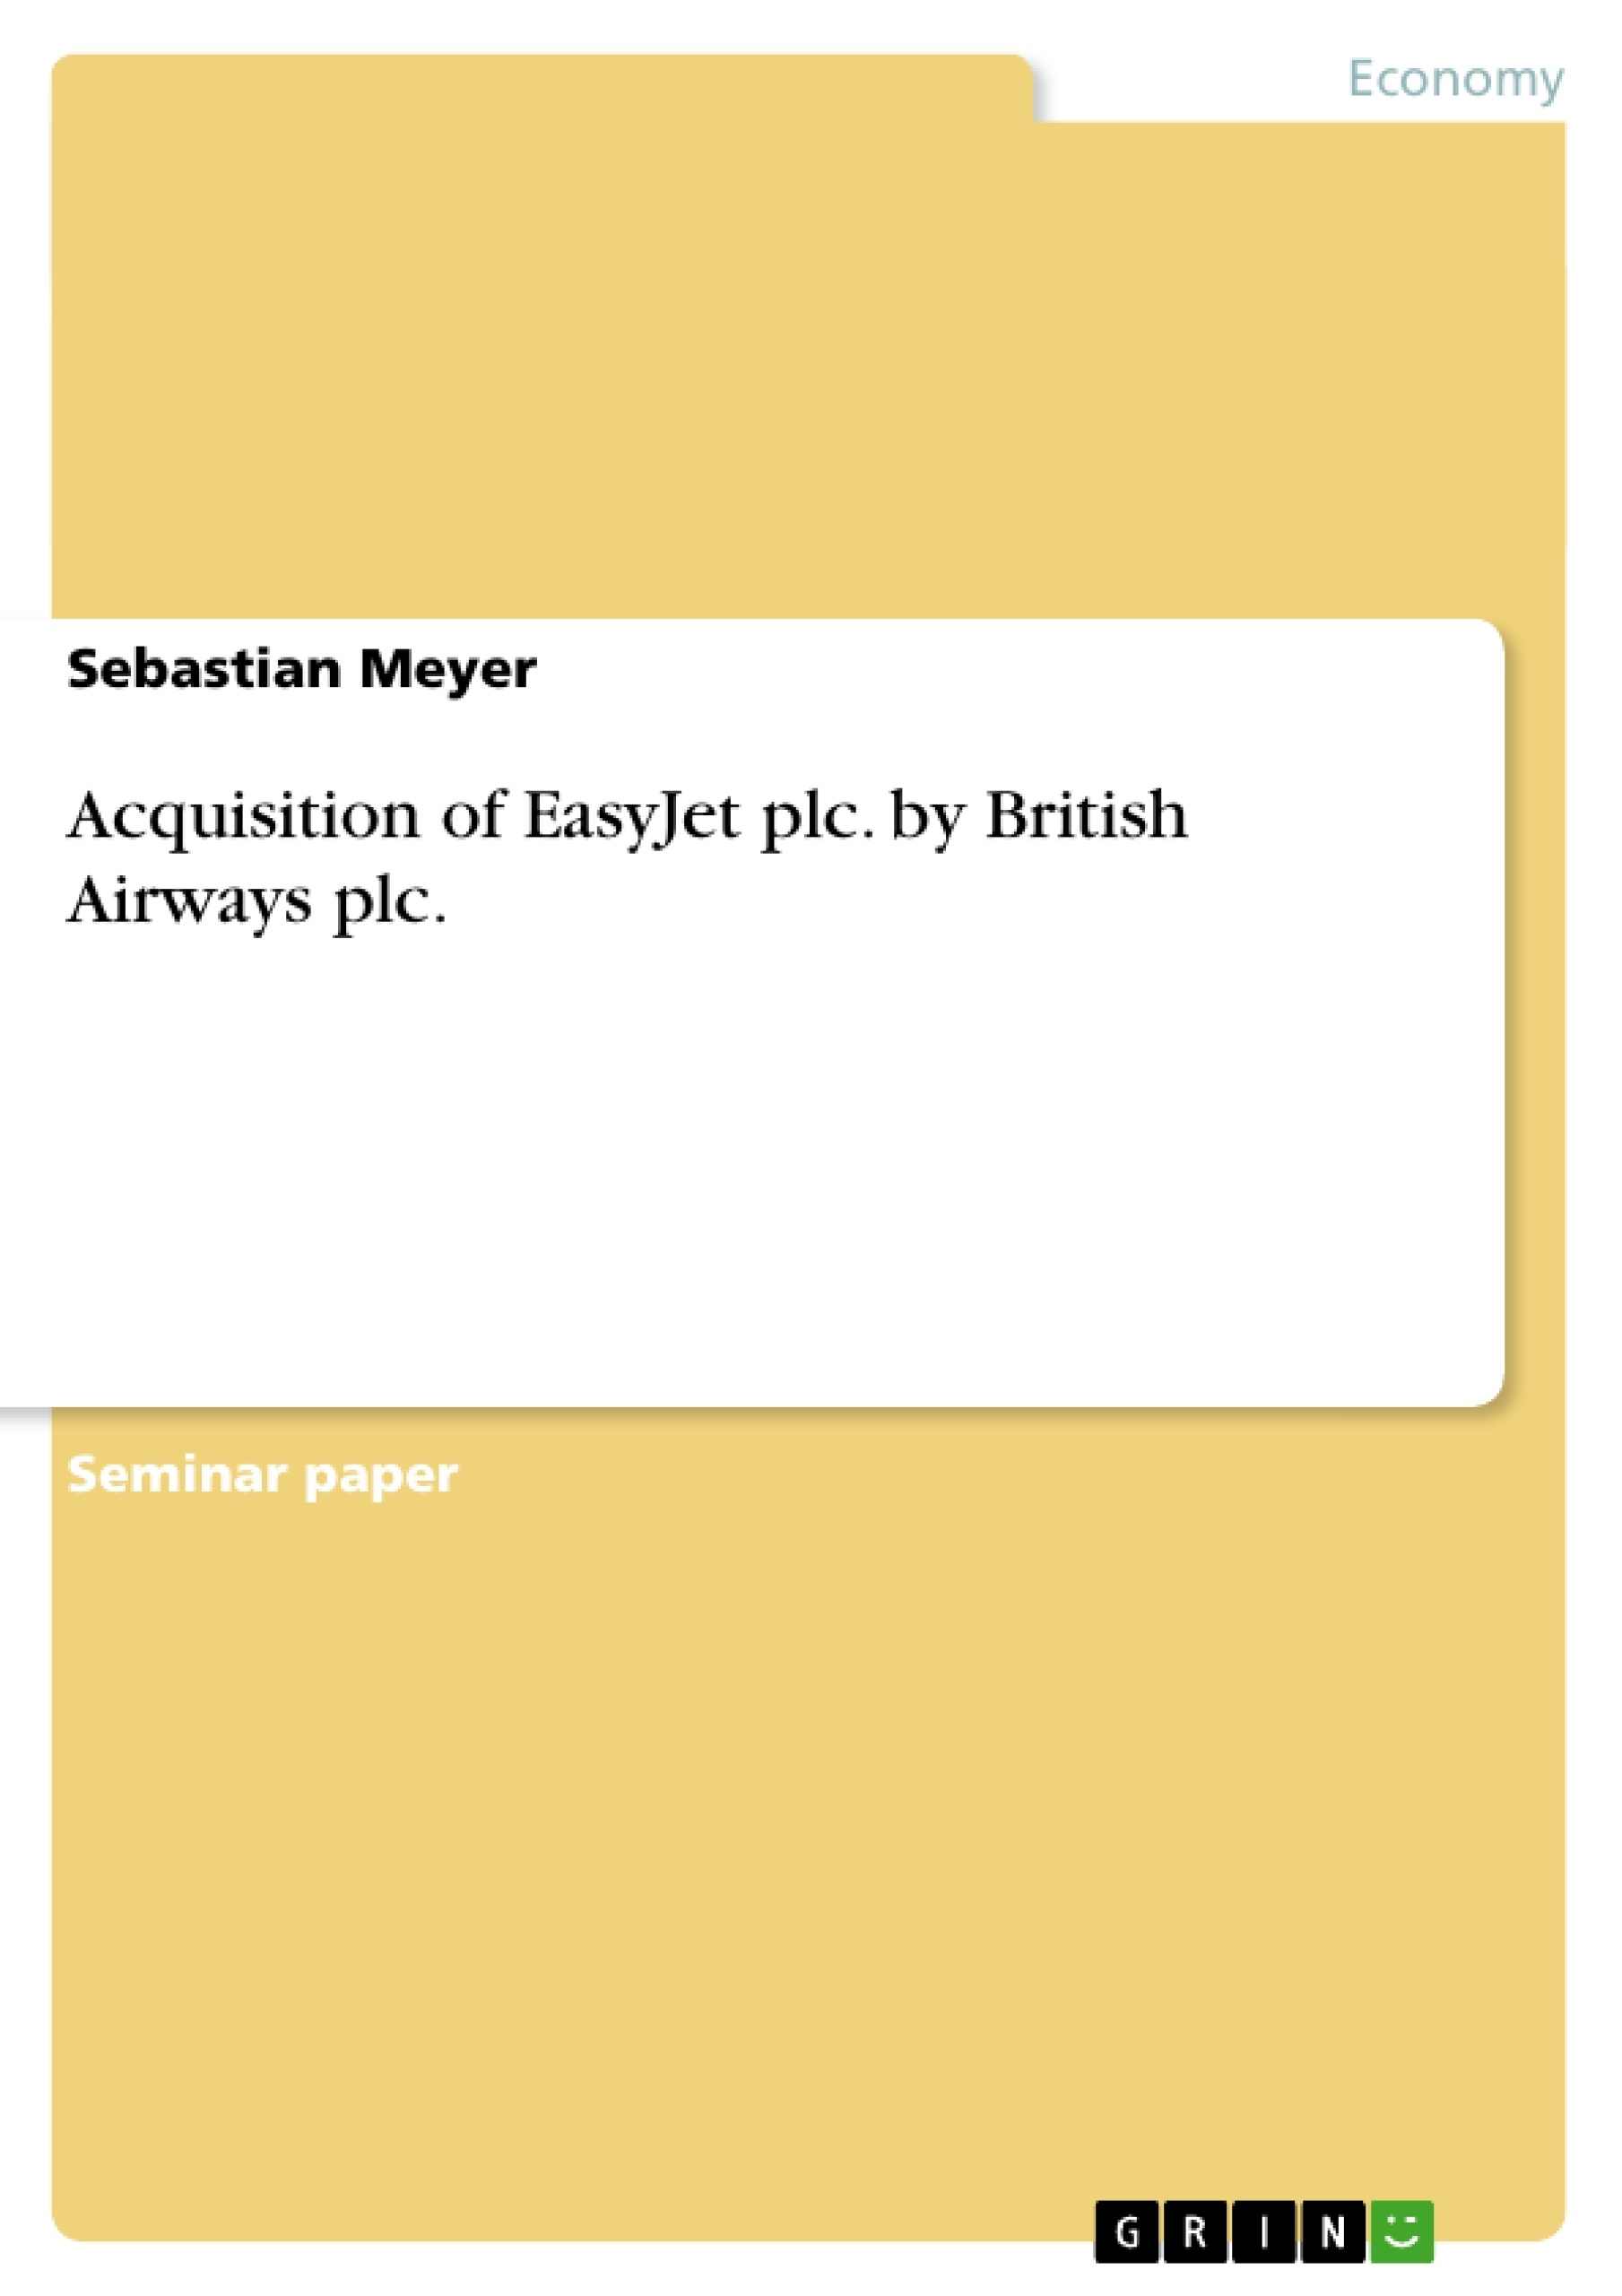 acquisition of easyjet plc by british airways plc publish your acquisition of easyjet plc by british airways plc publish your master s thesis bachelor s thesis essay or term paper